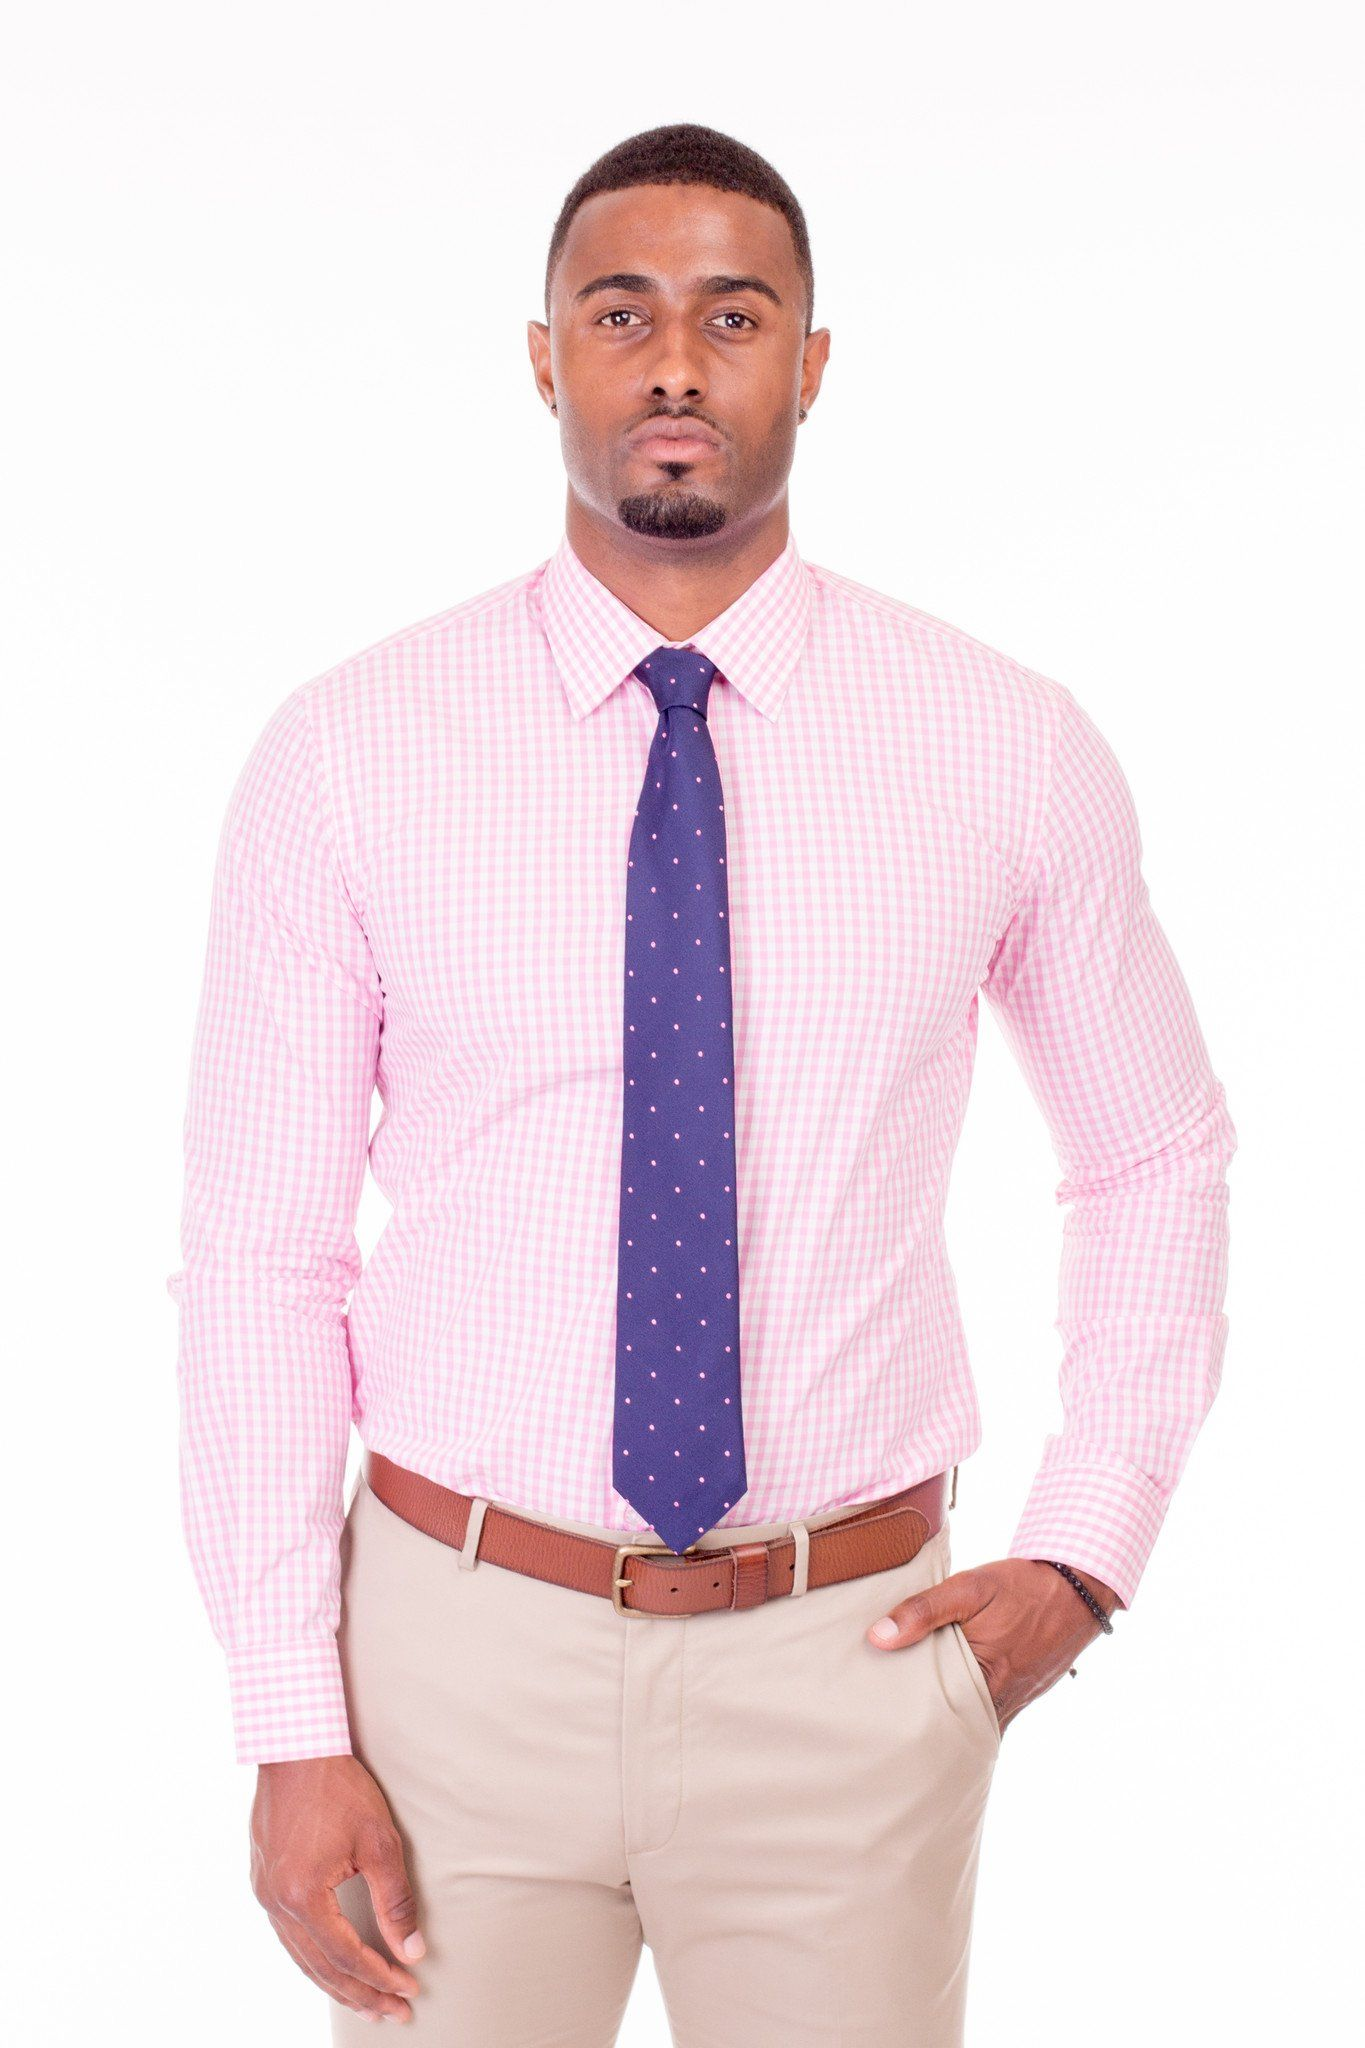 PINK AND WHITE GINGHAM DRESS SHIRT | Poor Little Rich Boy Clothing